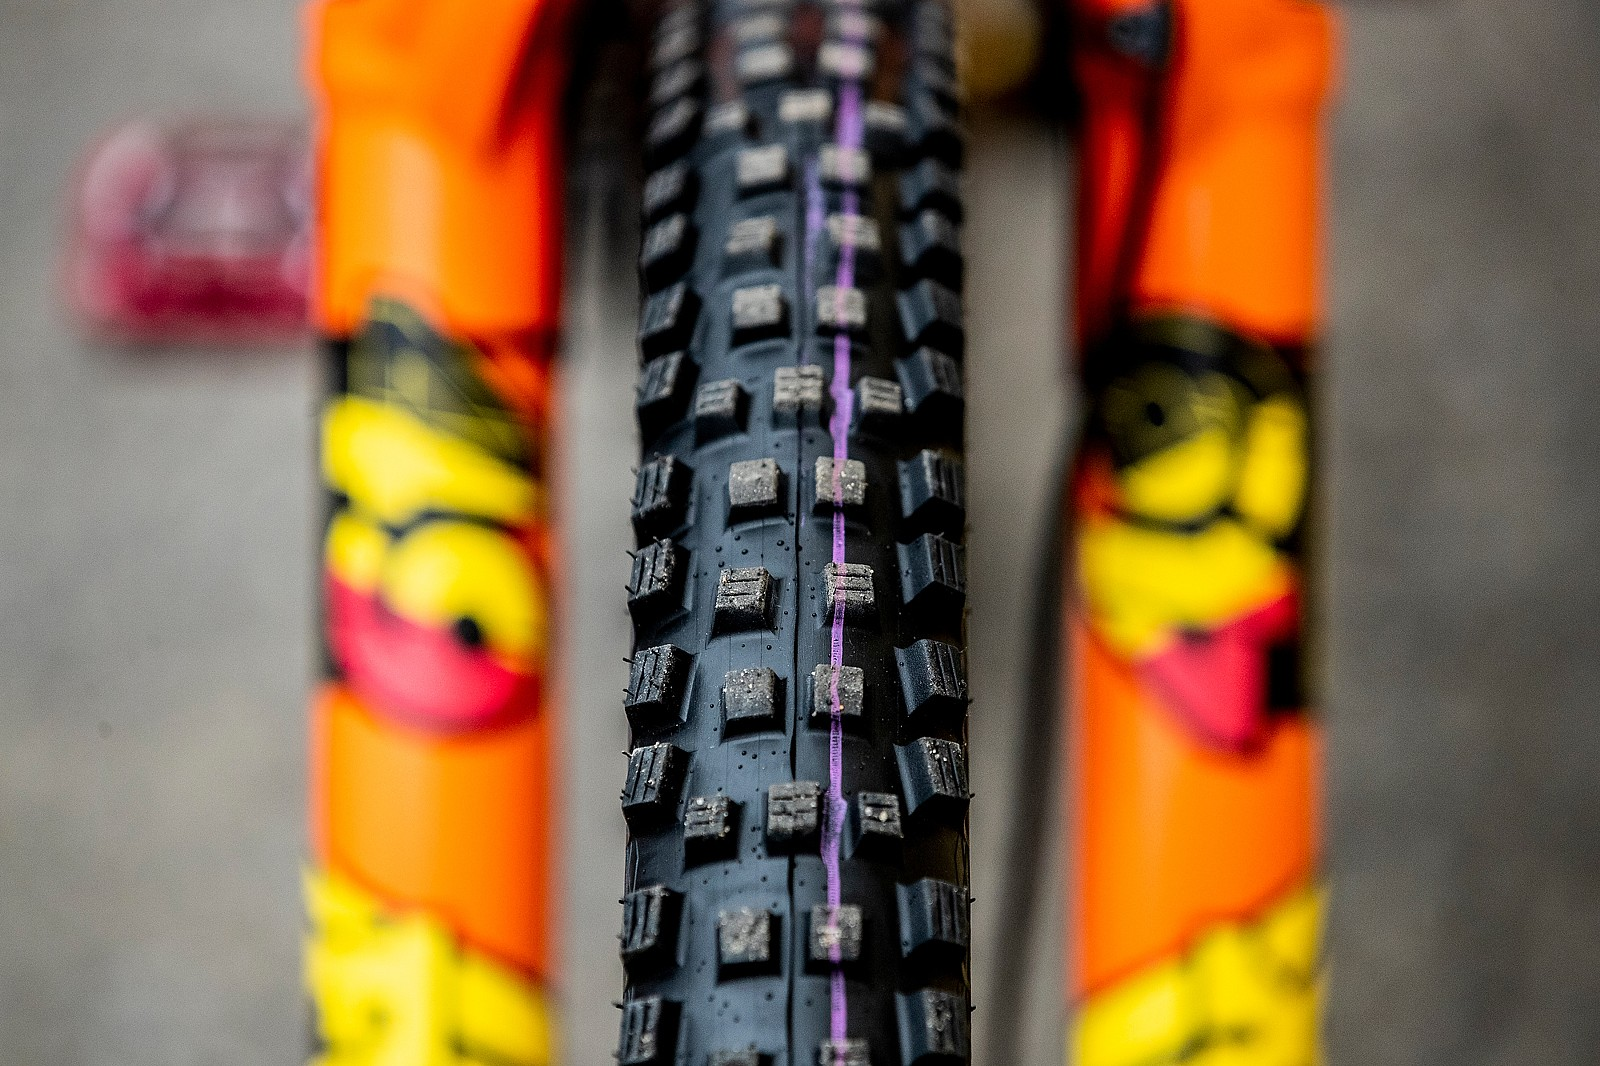 Fresh Meats - GT Bicycles World Championships DH Race Bikes - Mountain Biking Pictures - Vital MTB